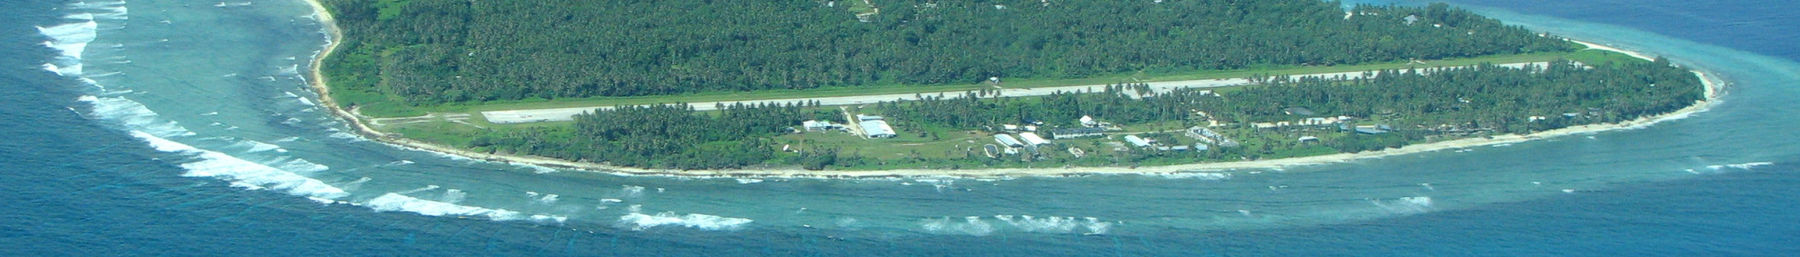 Falalop Island (Ulithi atoll, Federated States of Micronesia) banner Aerial view of airfield.jpg